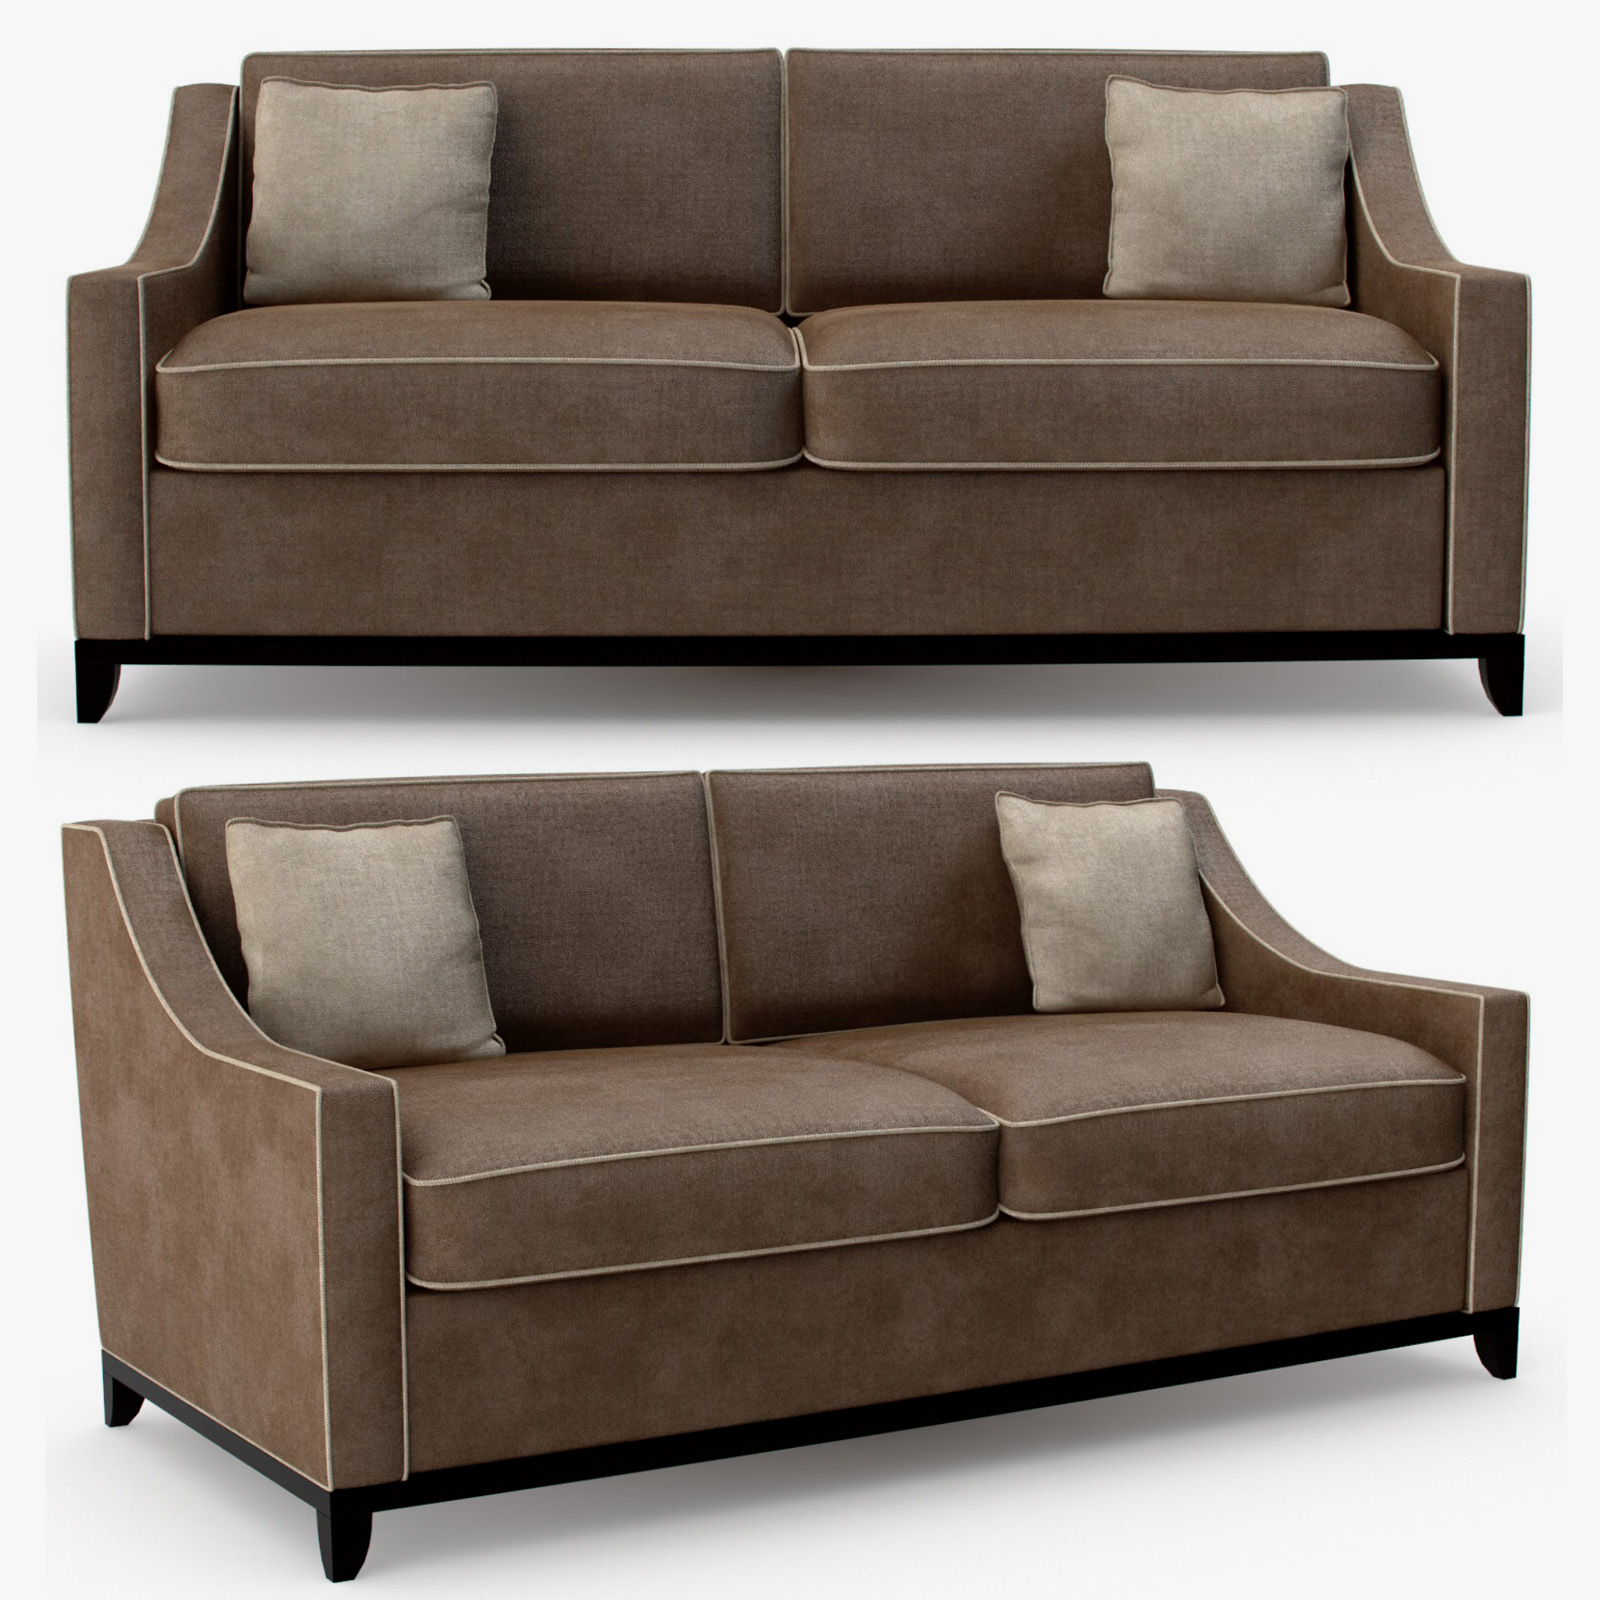 The Sofa and Chair company - Spencer 2 seater sofa